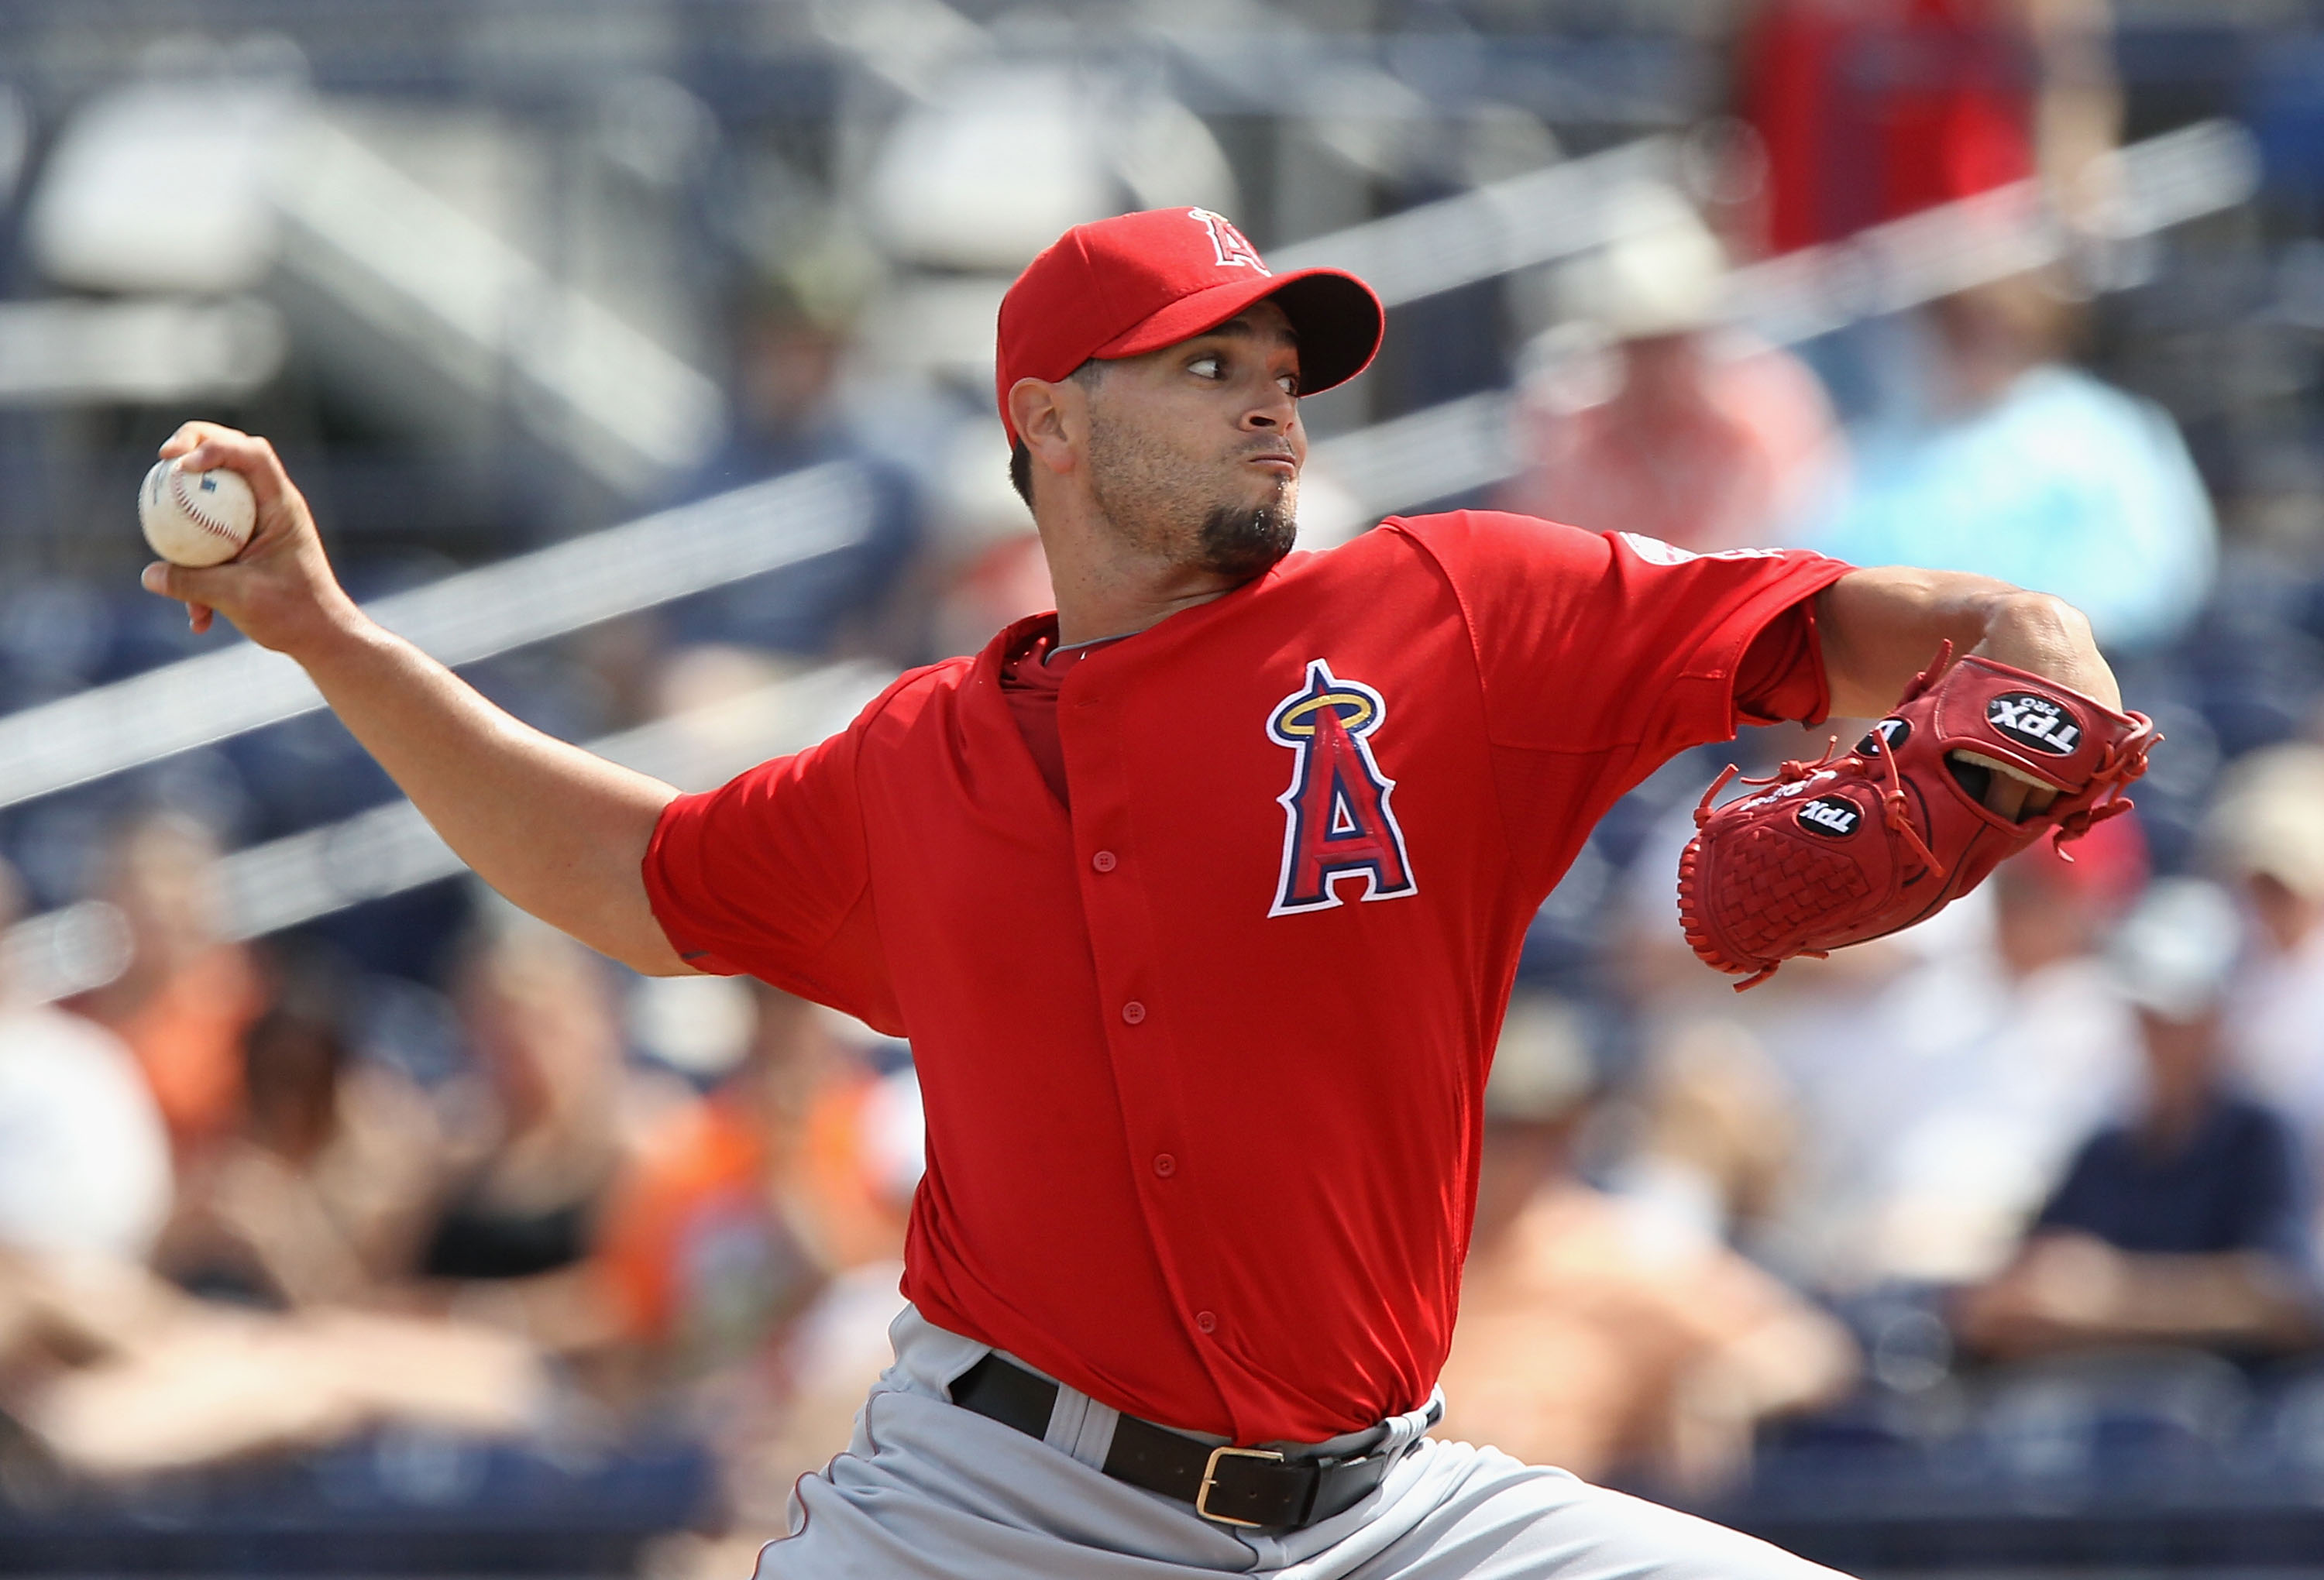 PEORIA, AZ - MARCH 15:  Starting pitcher Joel Pineiro #35 of the Los Angeles Angels of Anaheim pitches against the San Diego Padres during the spring training game at Peoria Stadium on March 15, 2011 in Peoria, Arizona.  (Photo by Christian Petersen/Getty